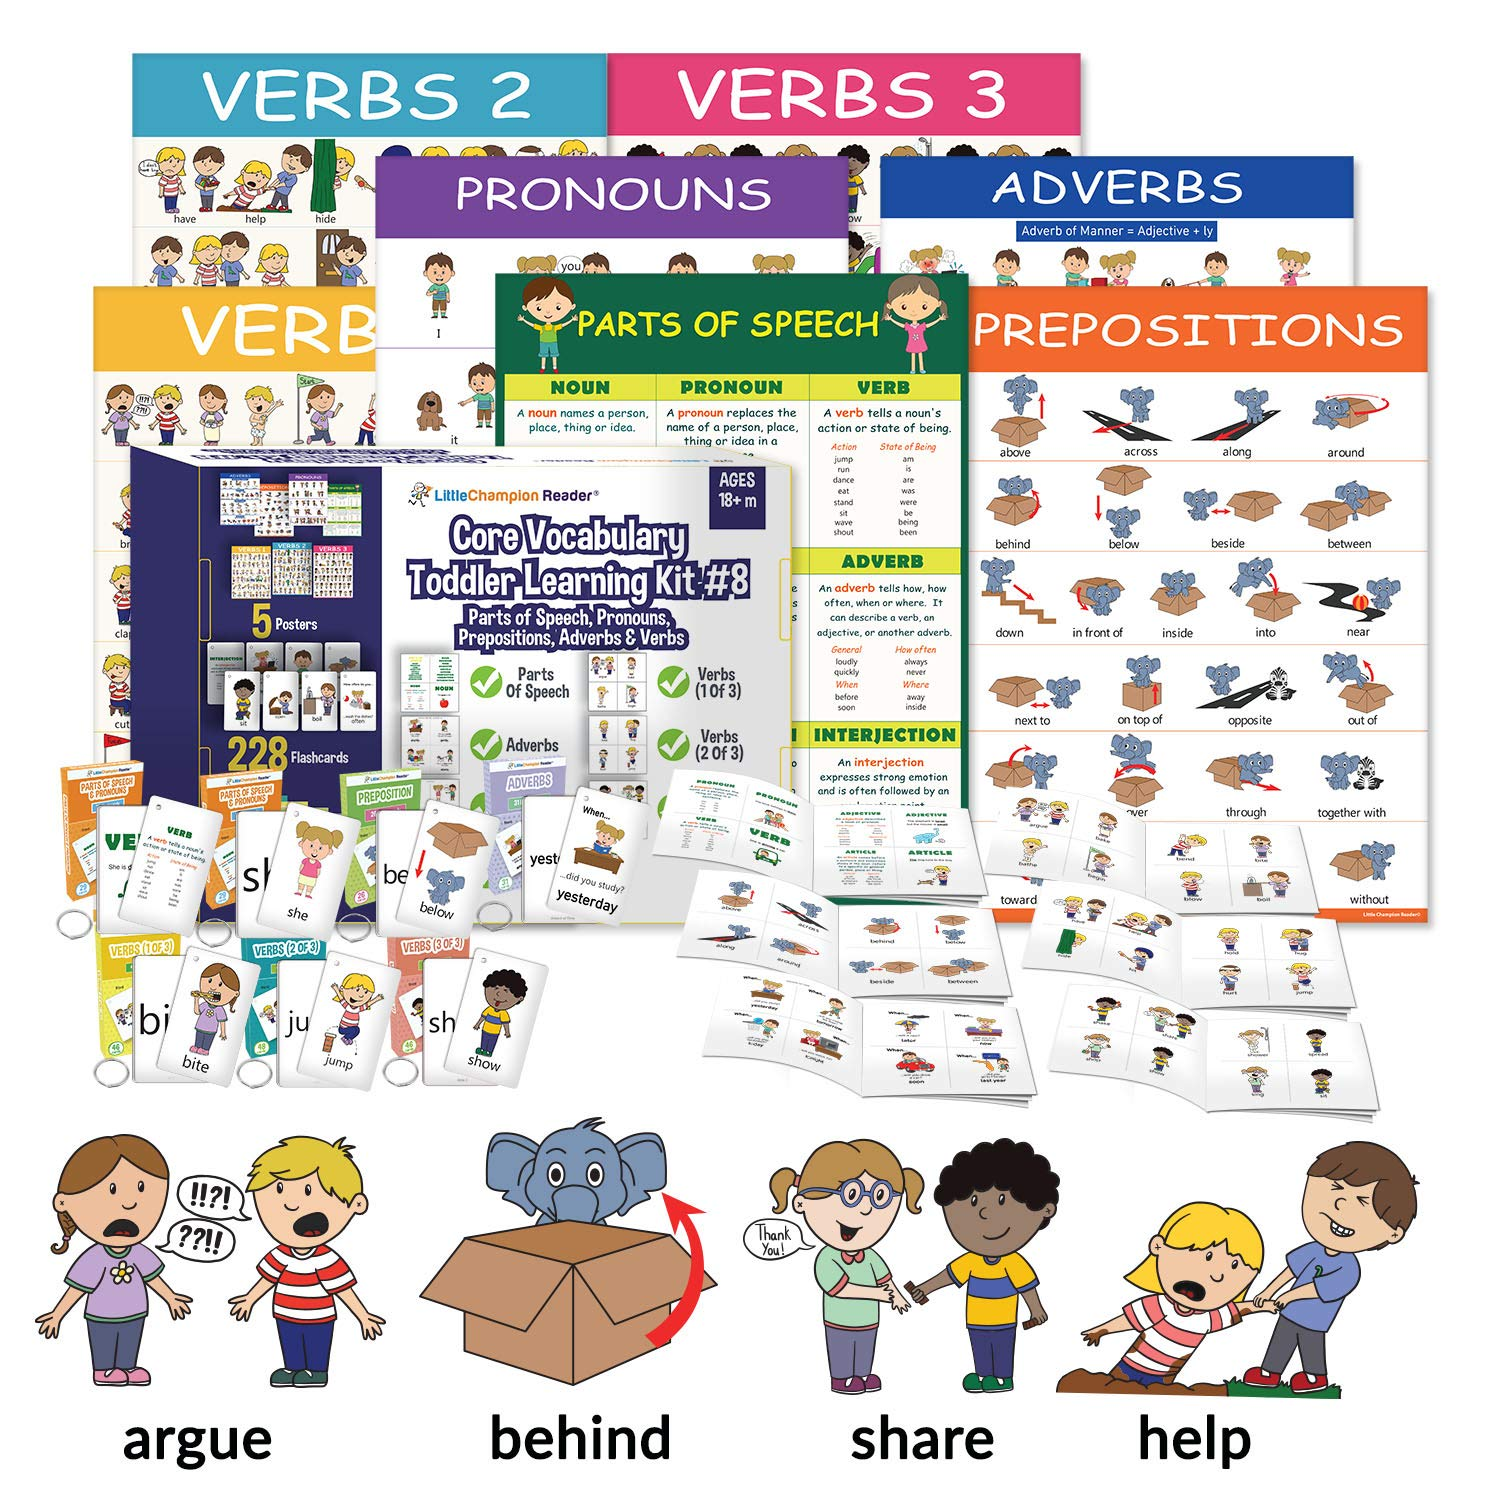 Little Champion Reader Teach Core Vocabulary Toddler Learning Kit 8 : Parts of Speech, Adverbs, Pronouns, Prepositions and Verb Action Words